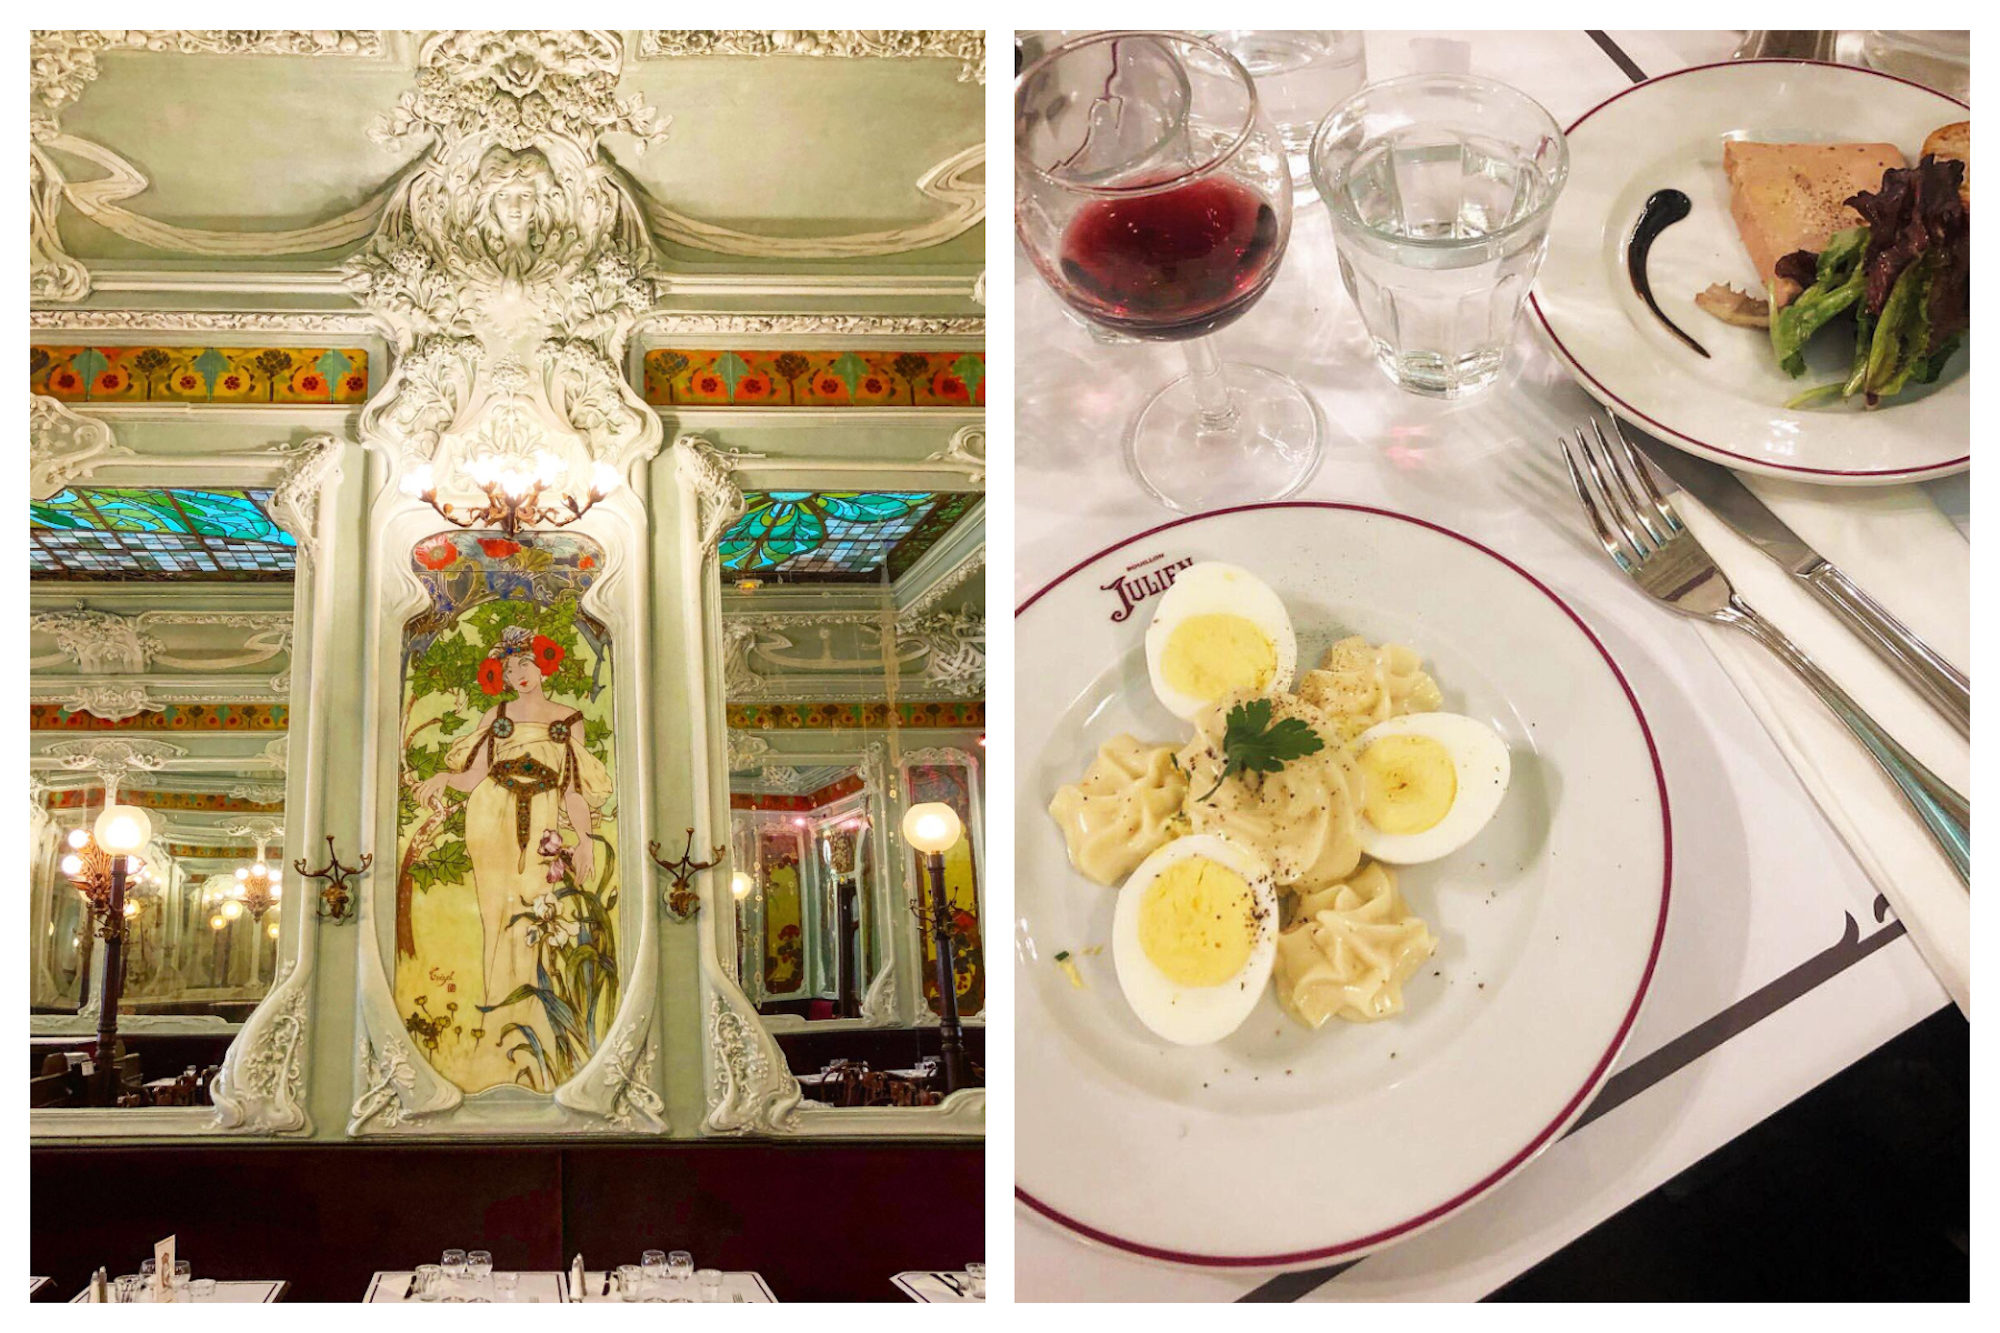 Elaborate Art Nouveau frescoes line the walls (left) and typical French classics like egg mayonnaise and foie gras are served (right) at Bouillon Julien restaurant in Paris